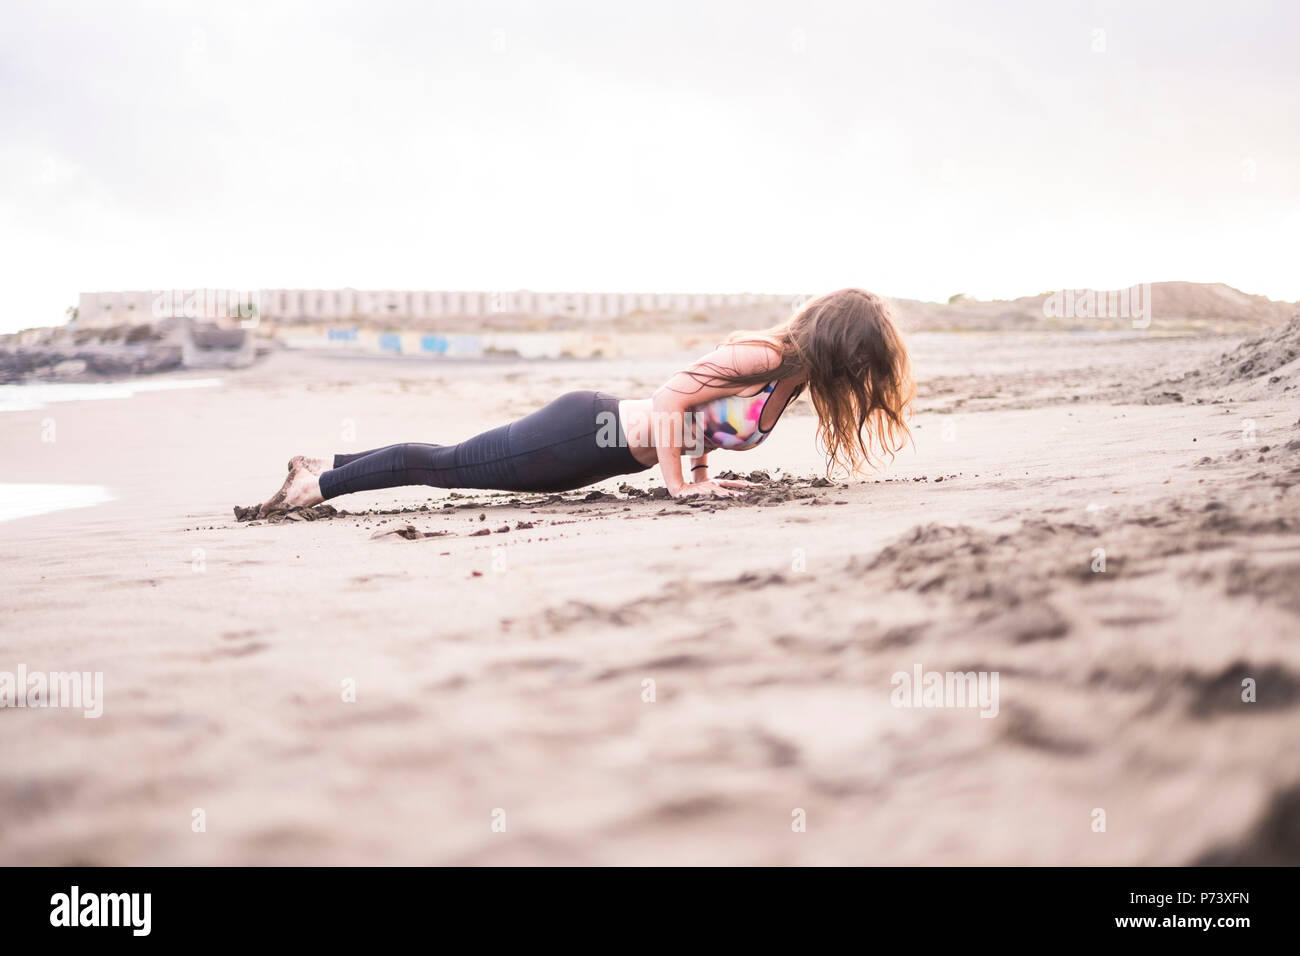 perfect plank for beautiful young caucasian lady at the beach on the shore. sunny day in outdoor leisure sport activity in strenght and balanced exerc - Stock Image